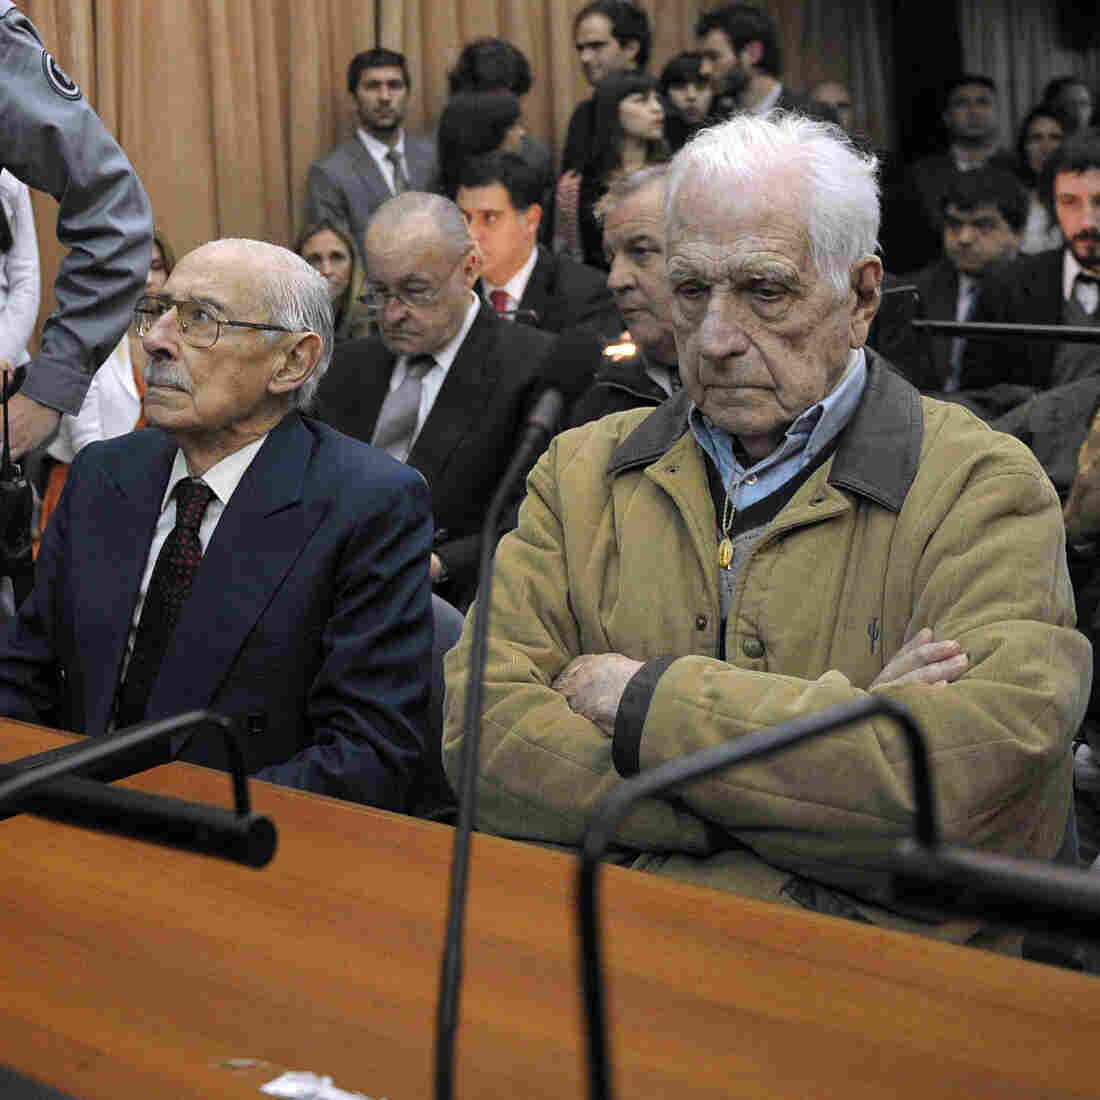 Former dictator and Gen. Jorge Rafael Videla (left), and former general and member of the military junta Reynaldo Bignone in a Buenos Aires court on Thursday.